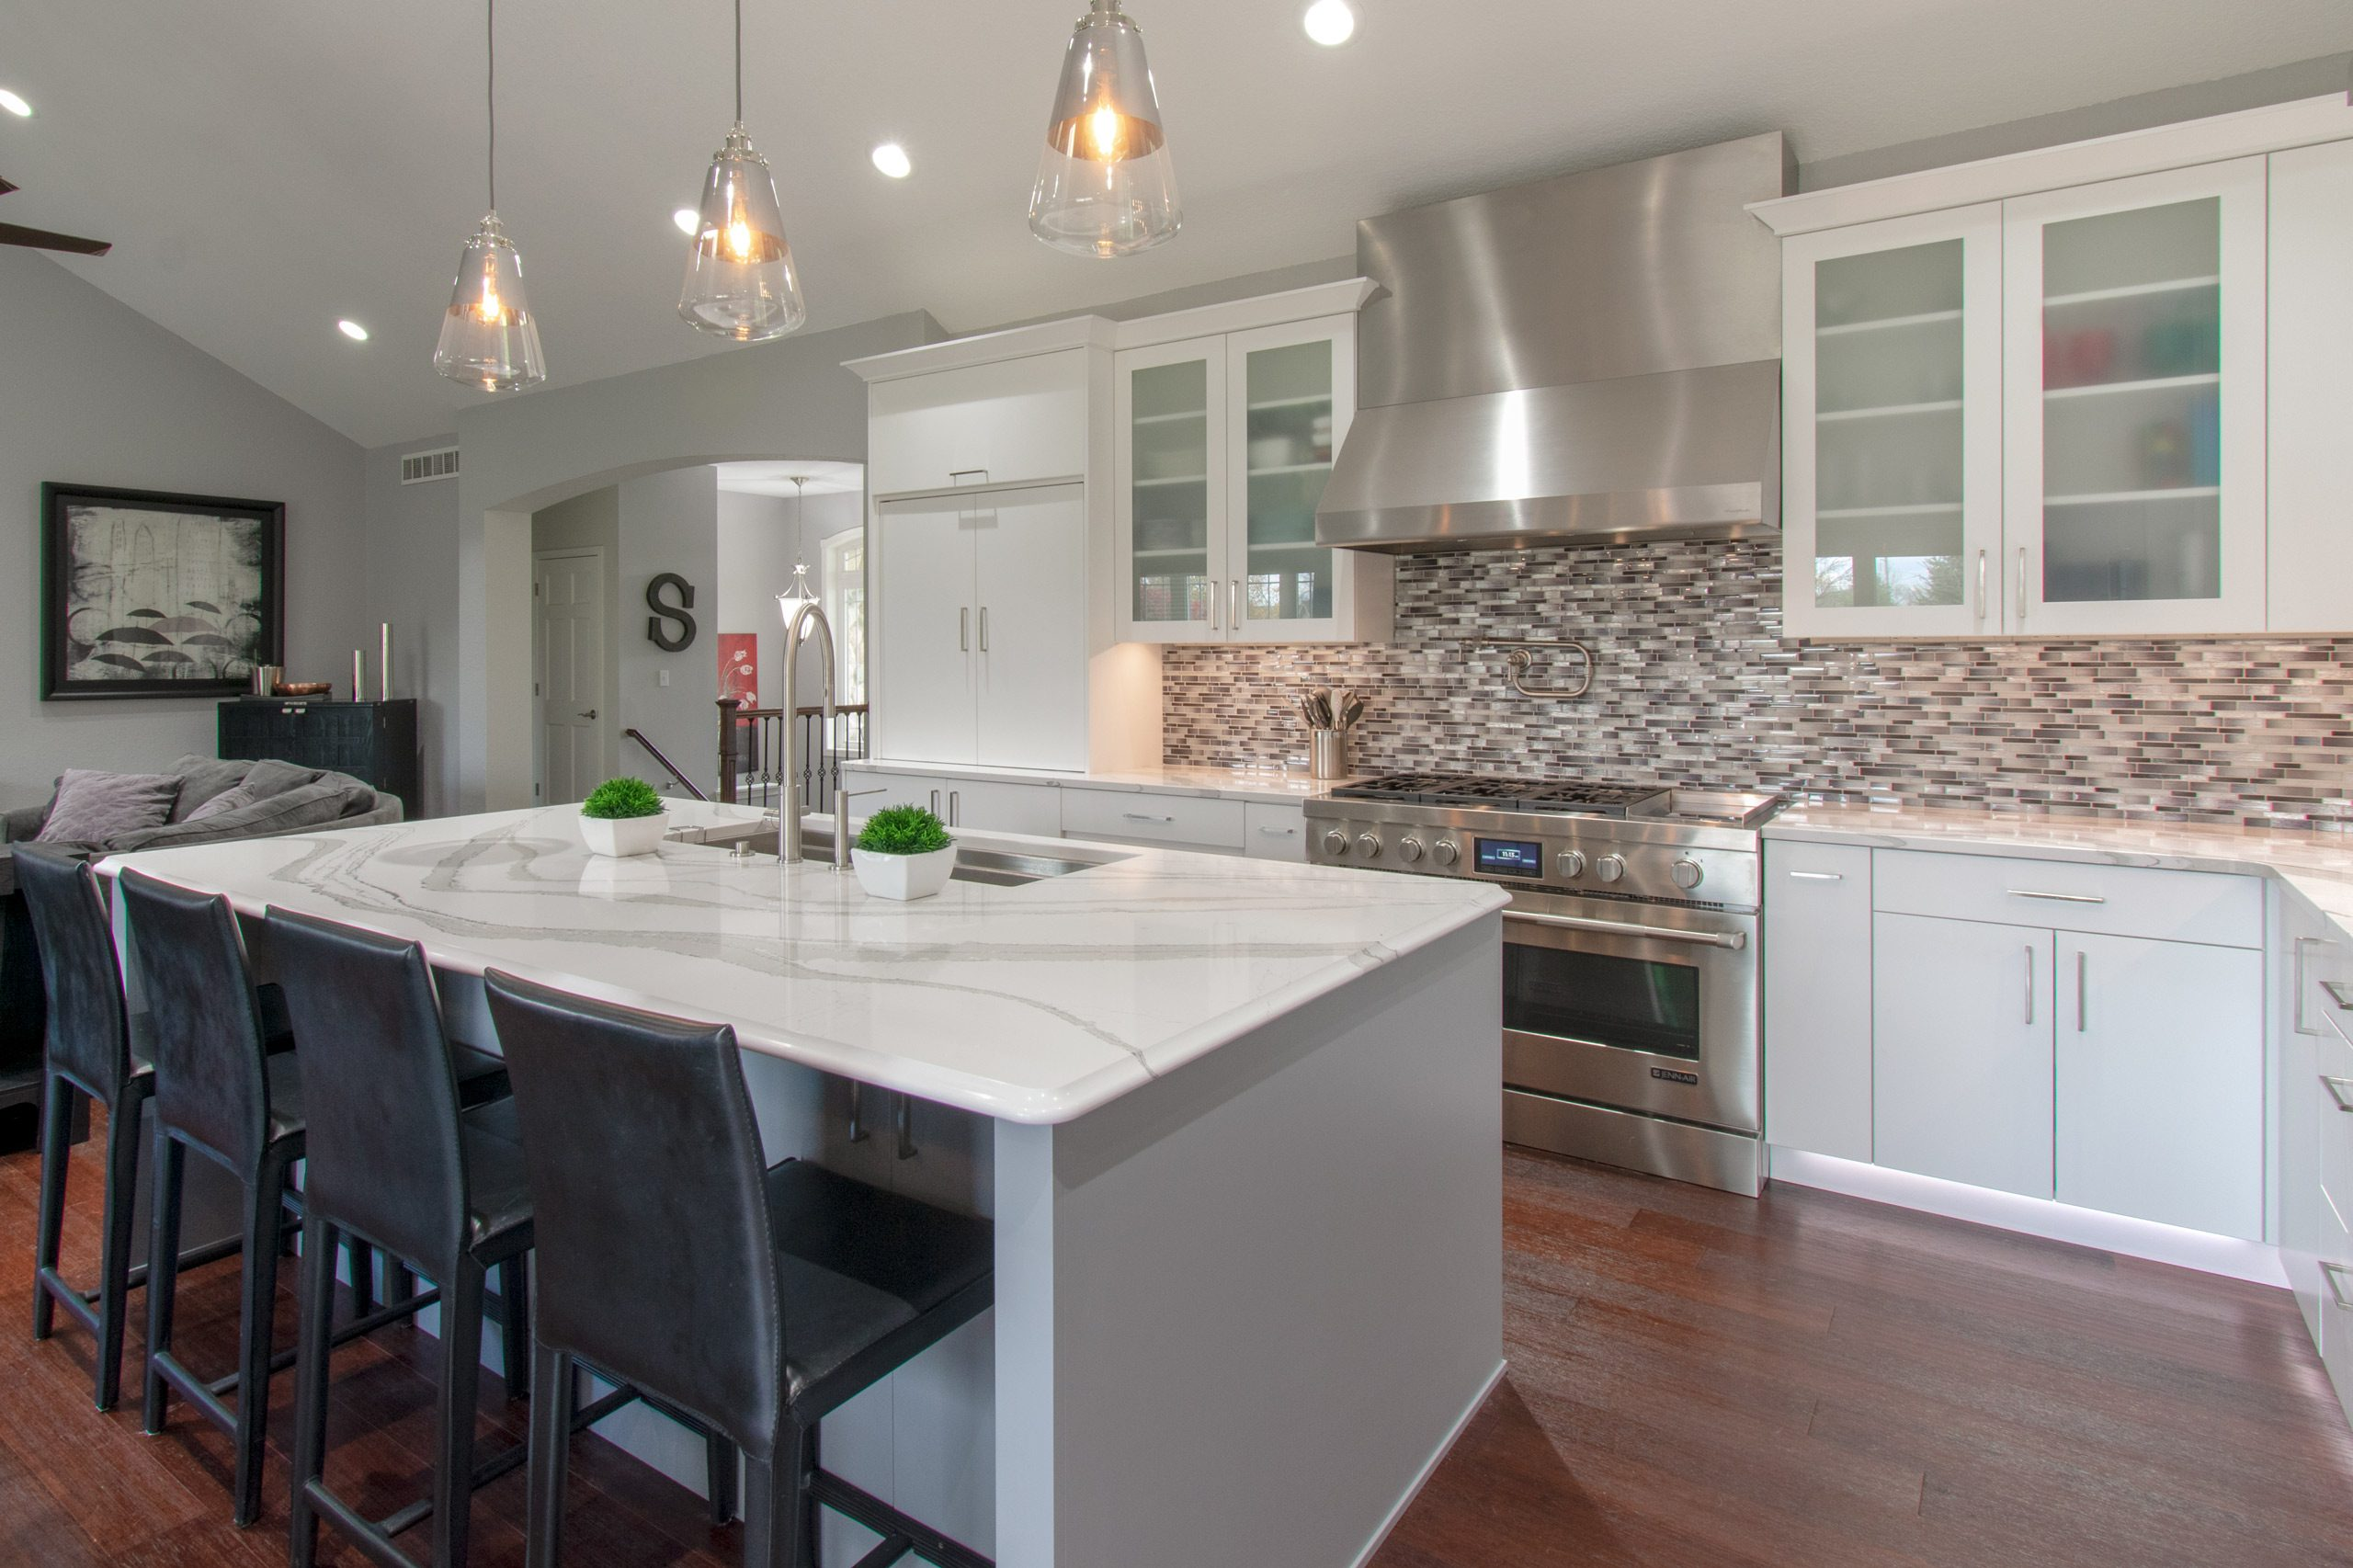 Lake Country contemporary kitchen with island, Cambria quartz counter, mosaic backsplash